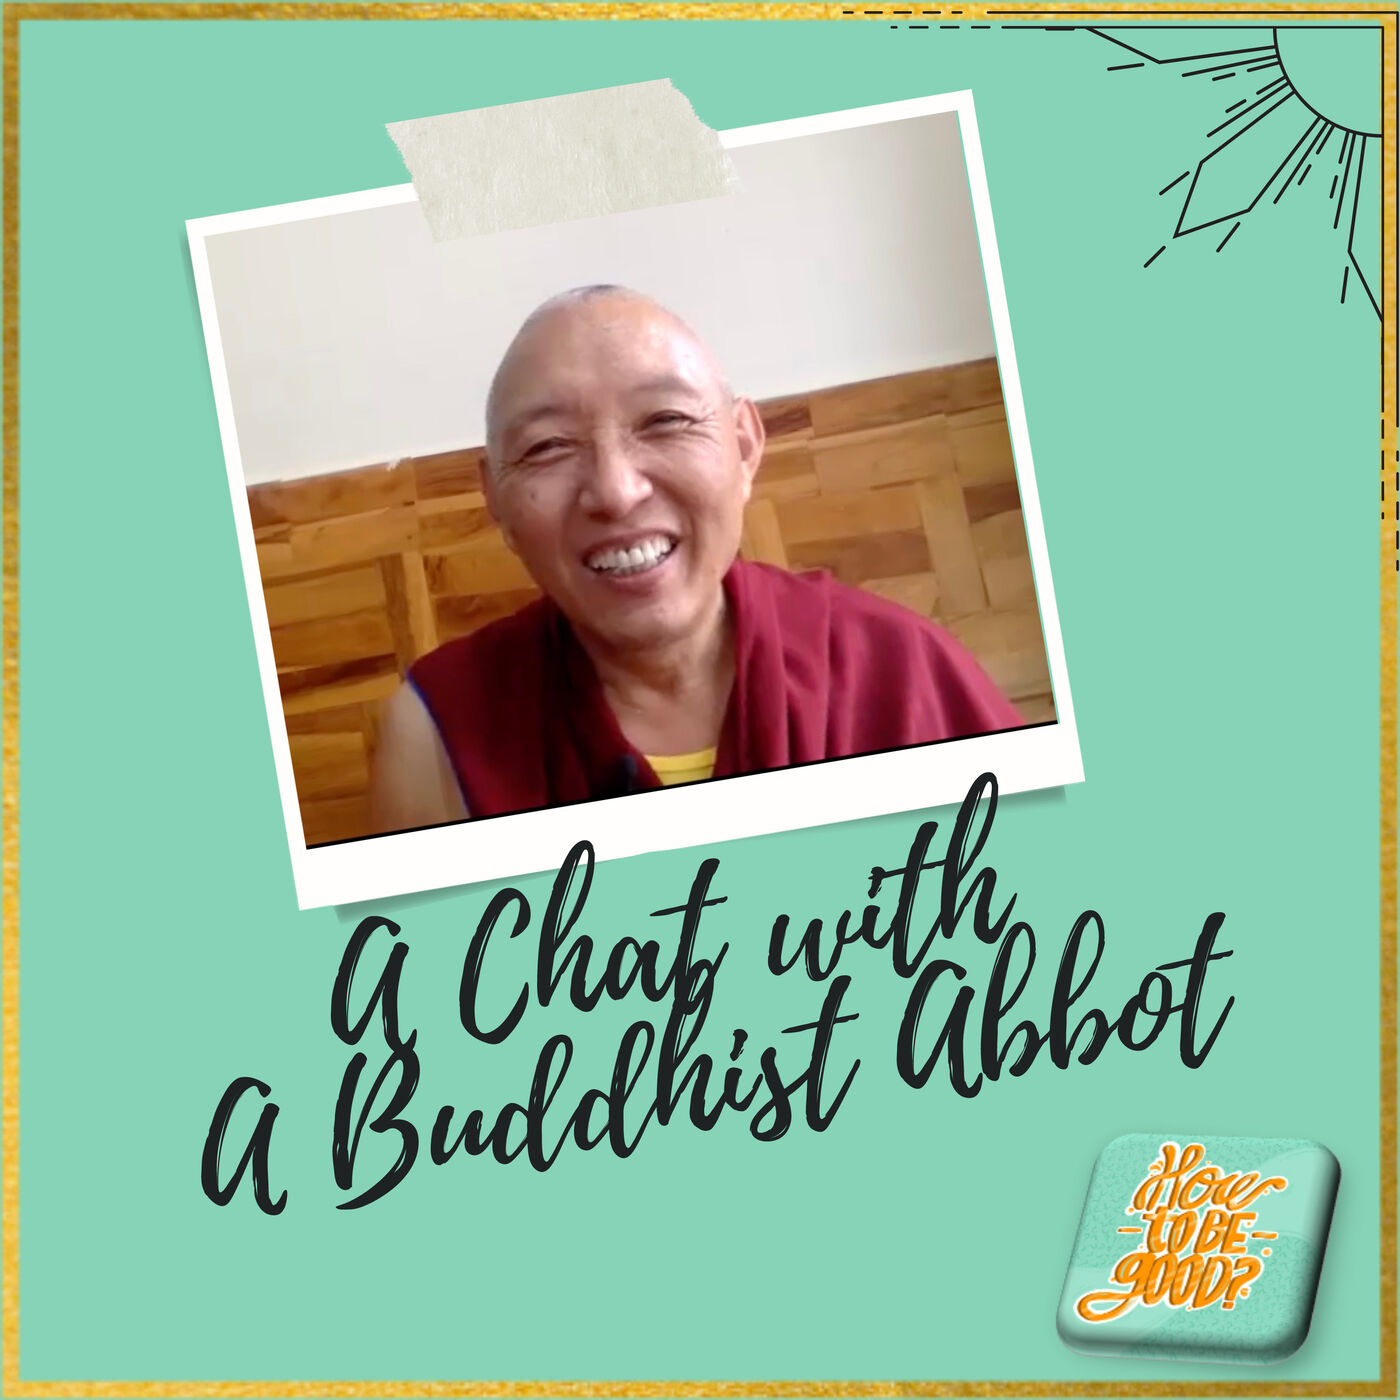 A Chat with a Buddhist Abbot